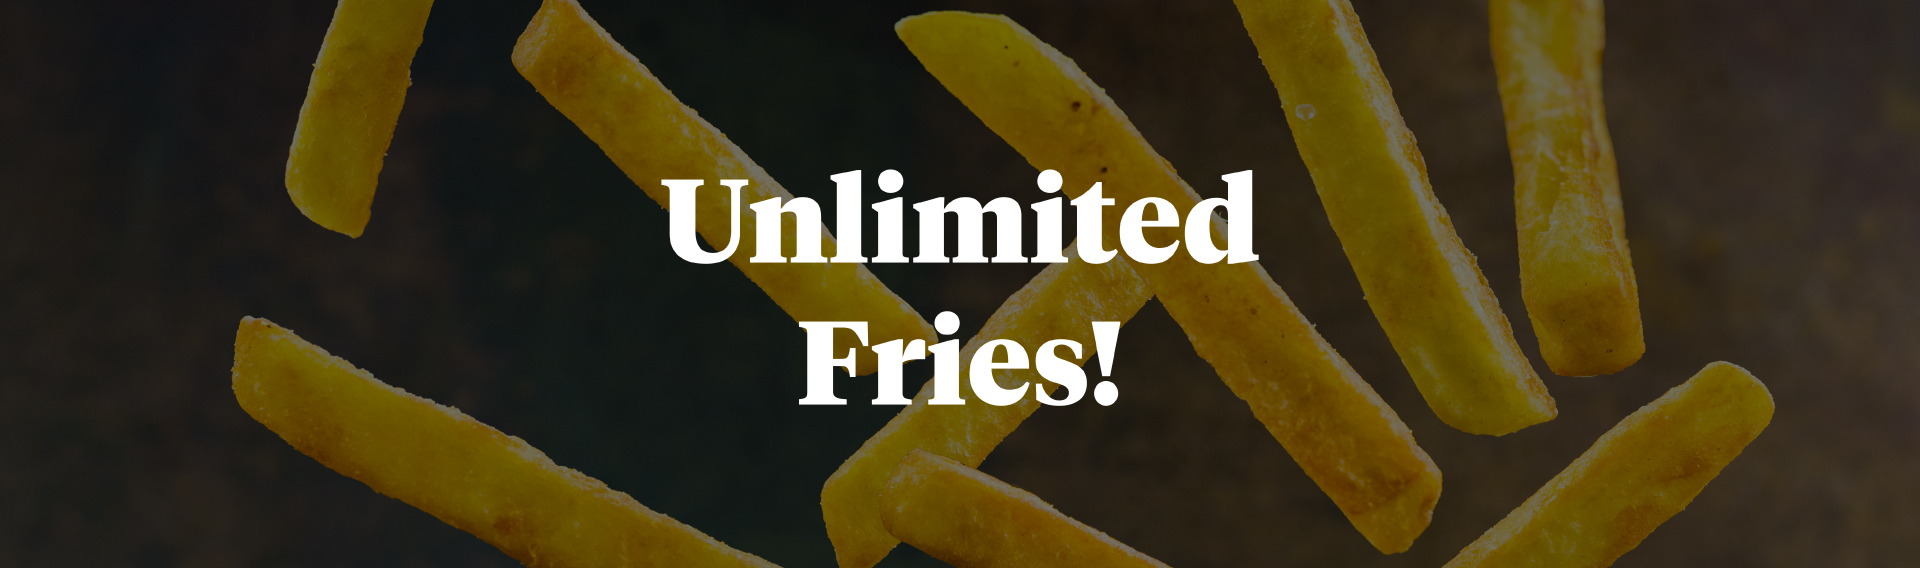 Unlimited Fries